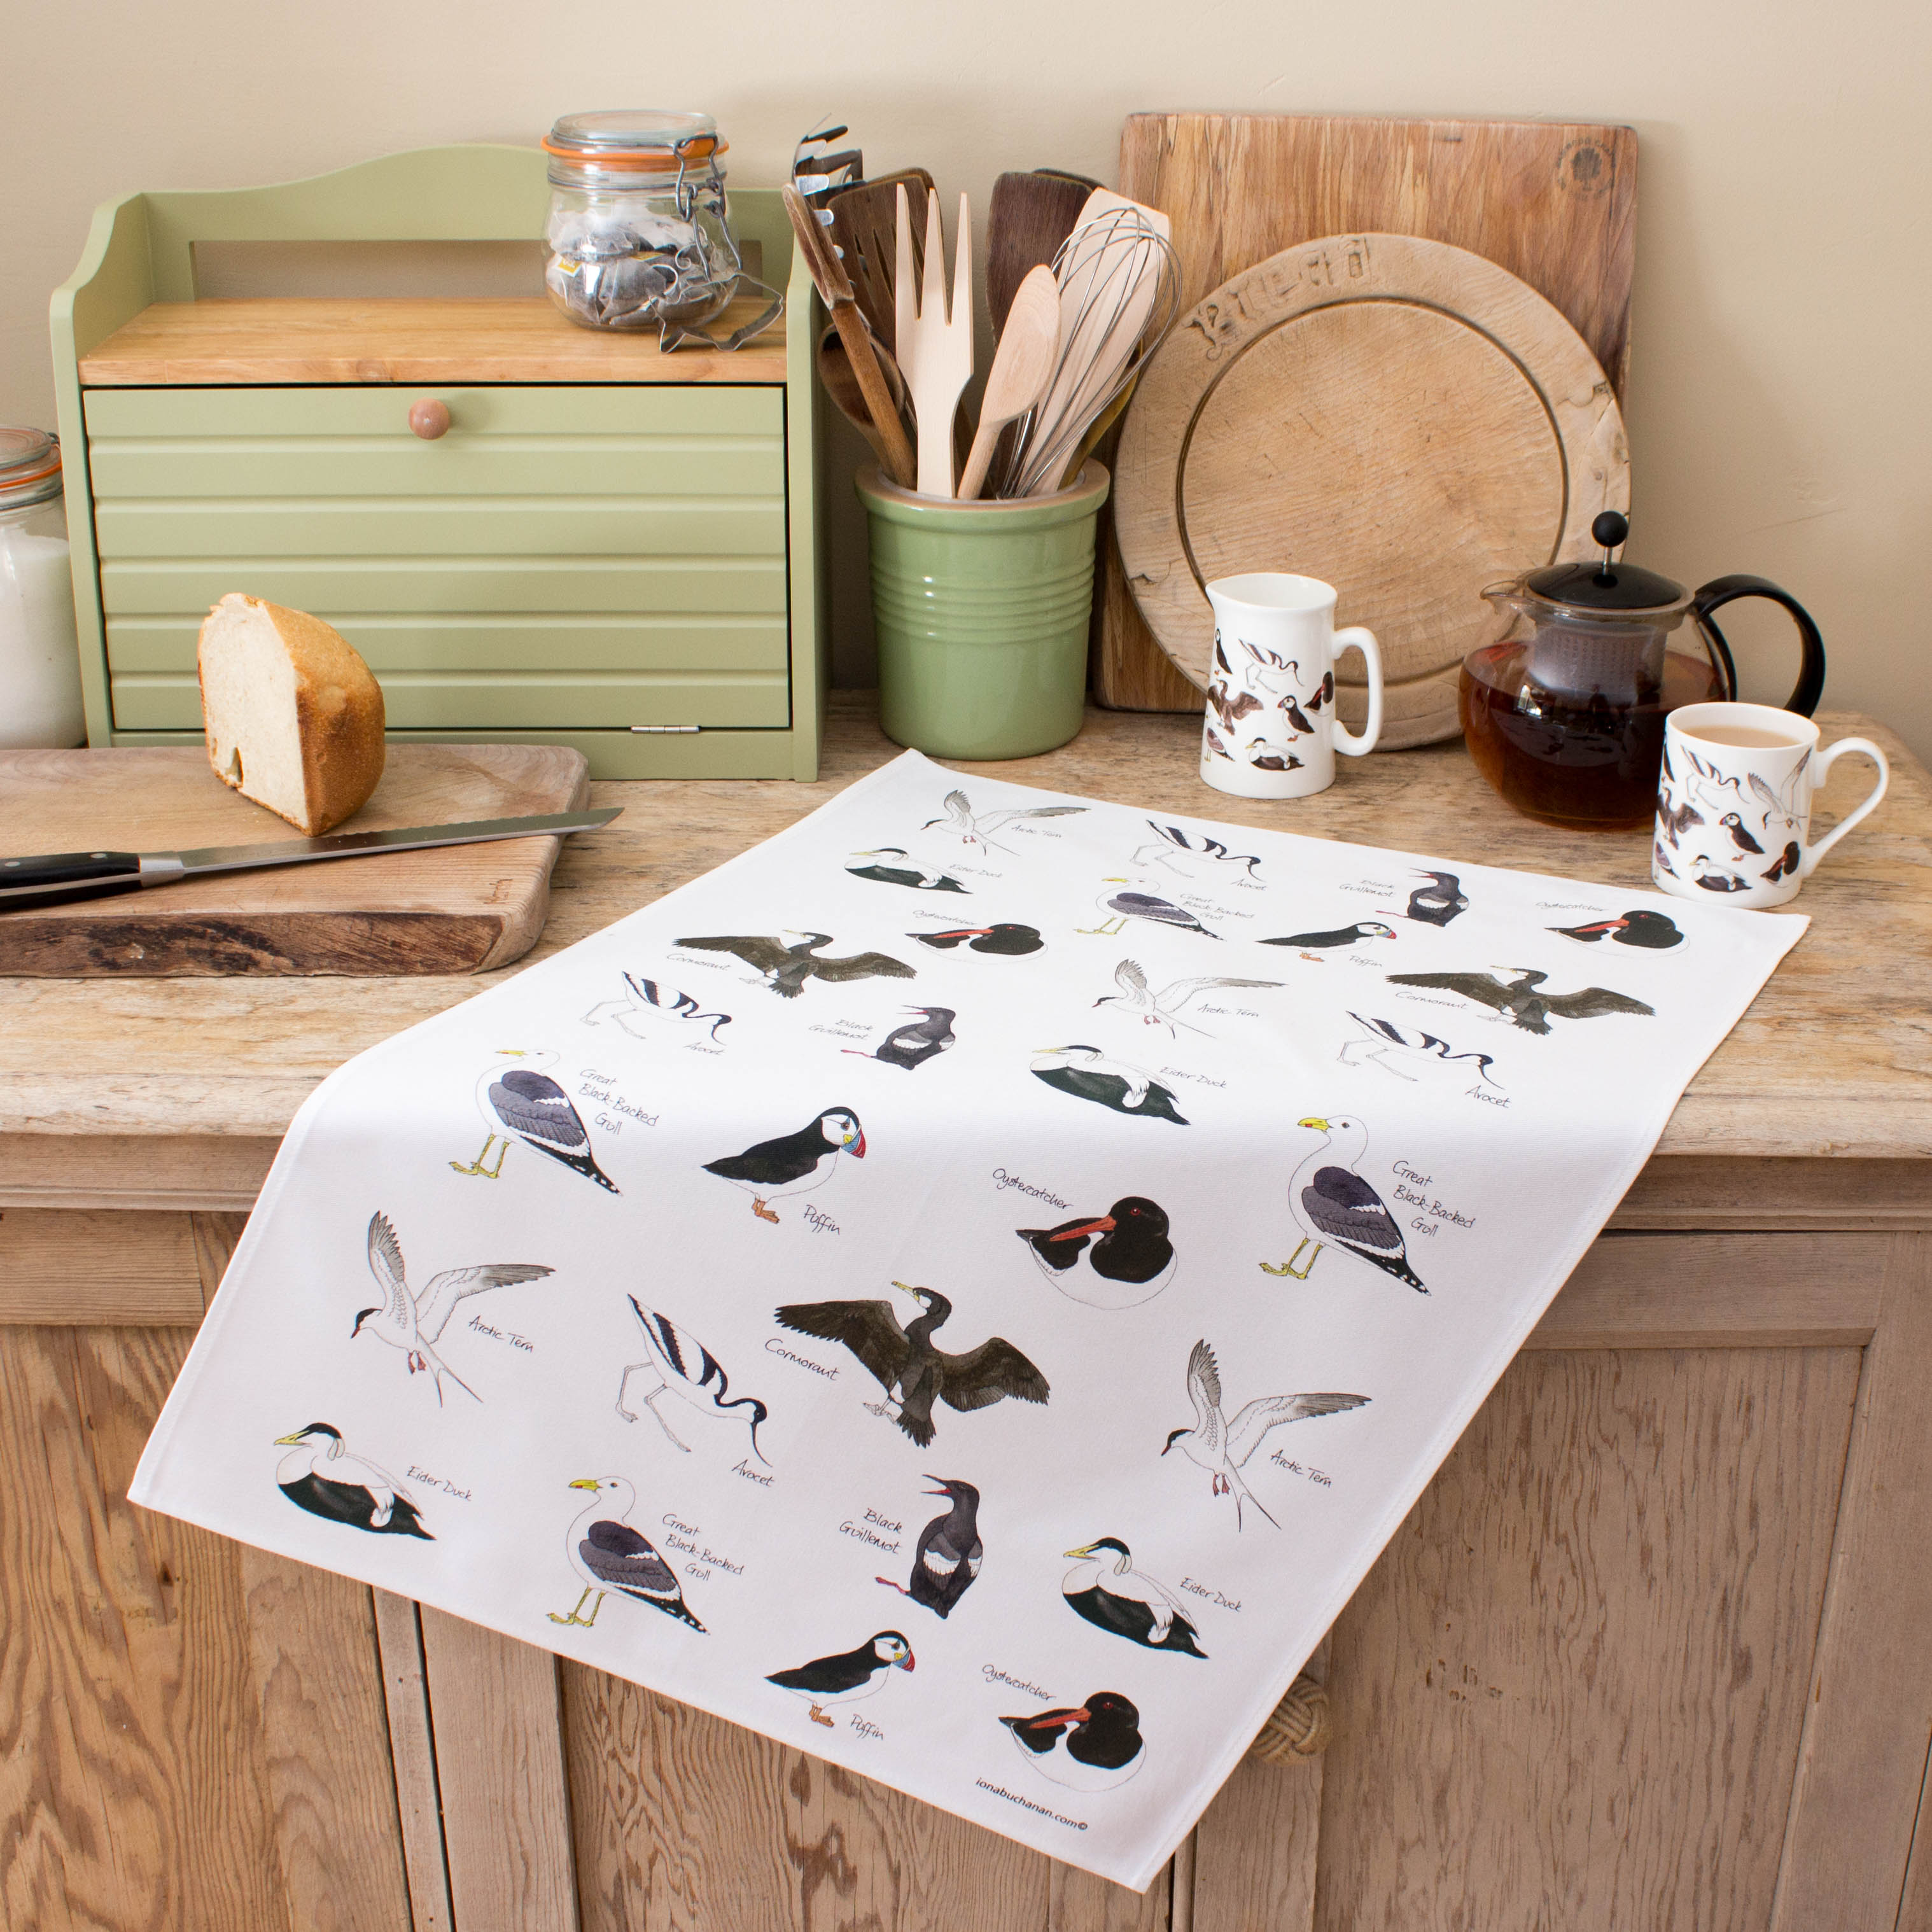 tea towel with sea birds design